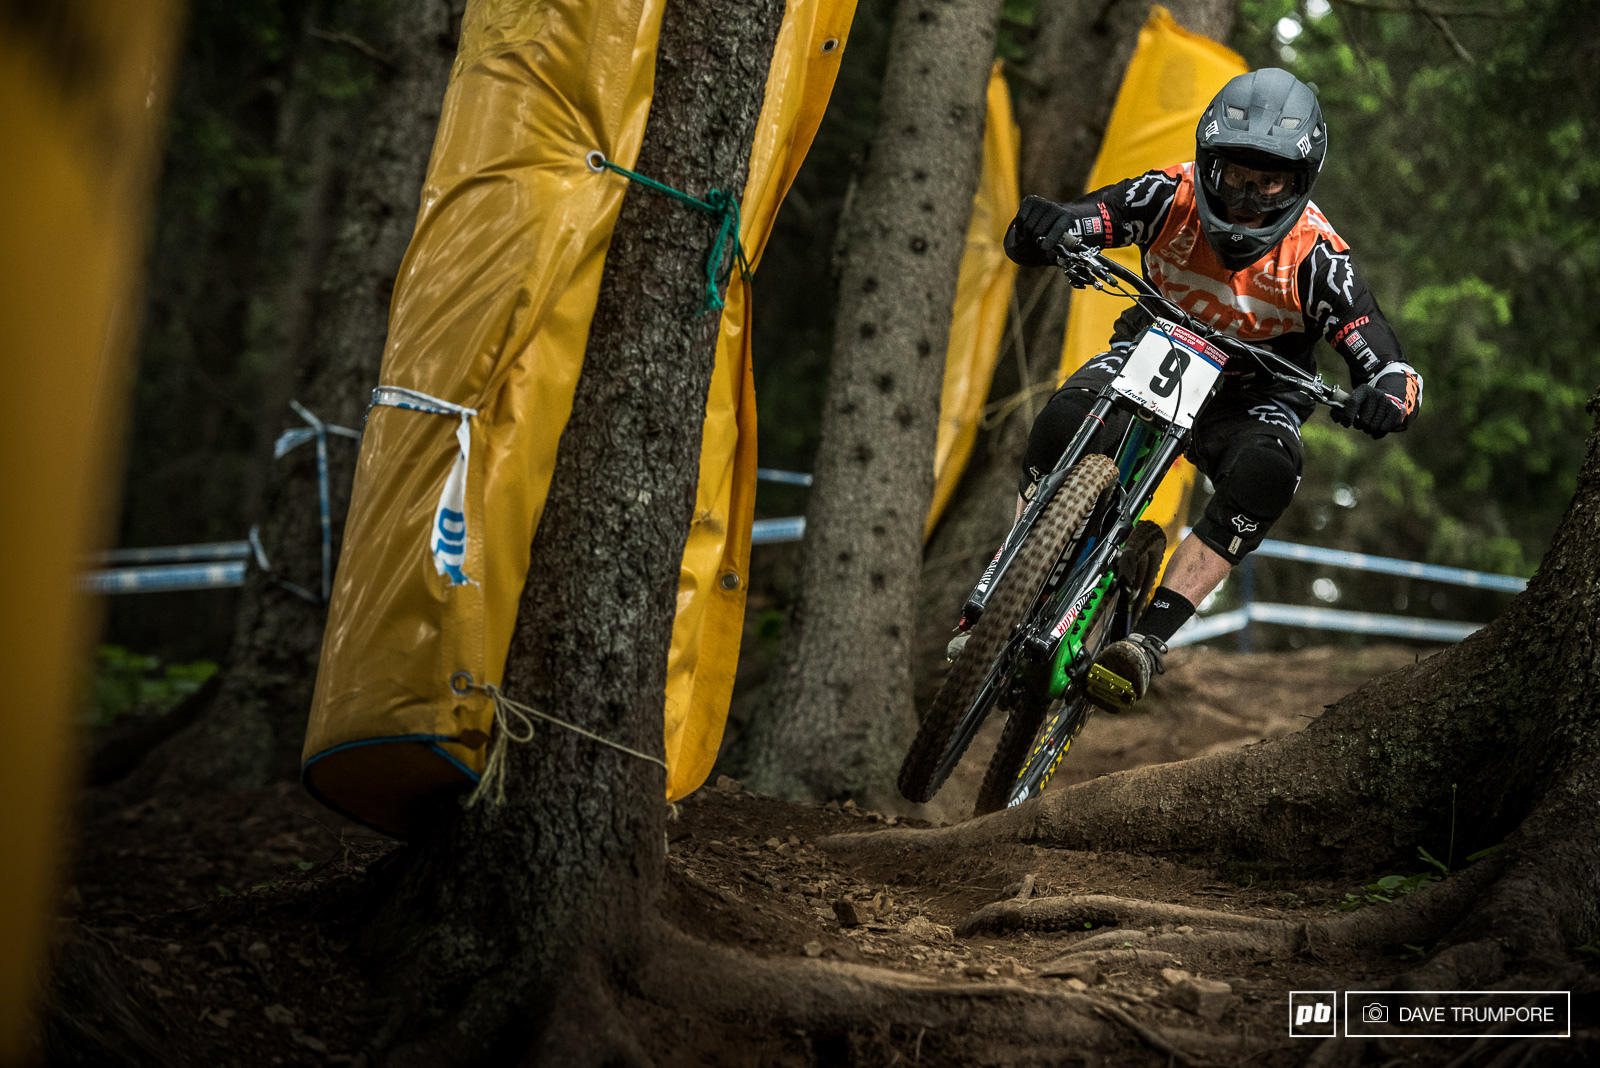 Full speed and just inches from the trees is what it takes to land yourself on the podium. Nice work Connor Fearon.